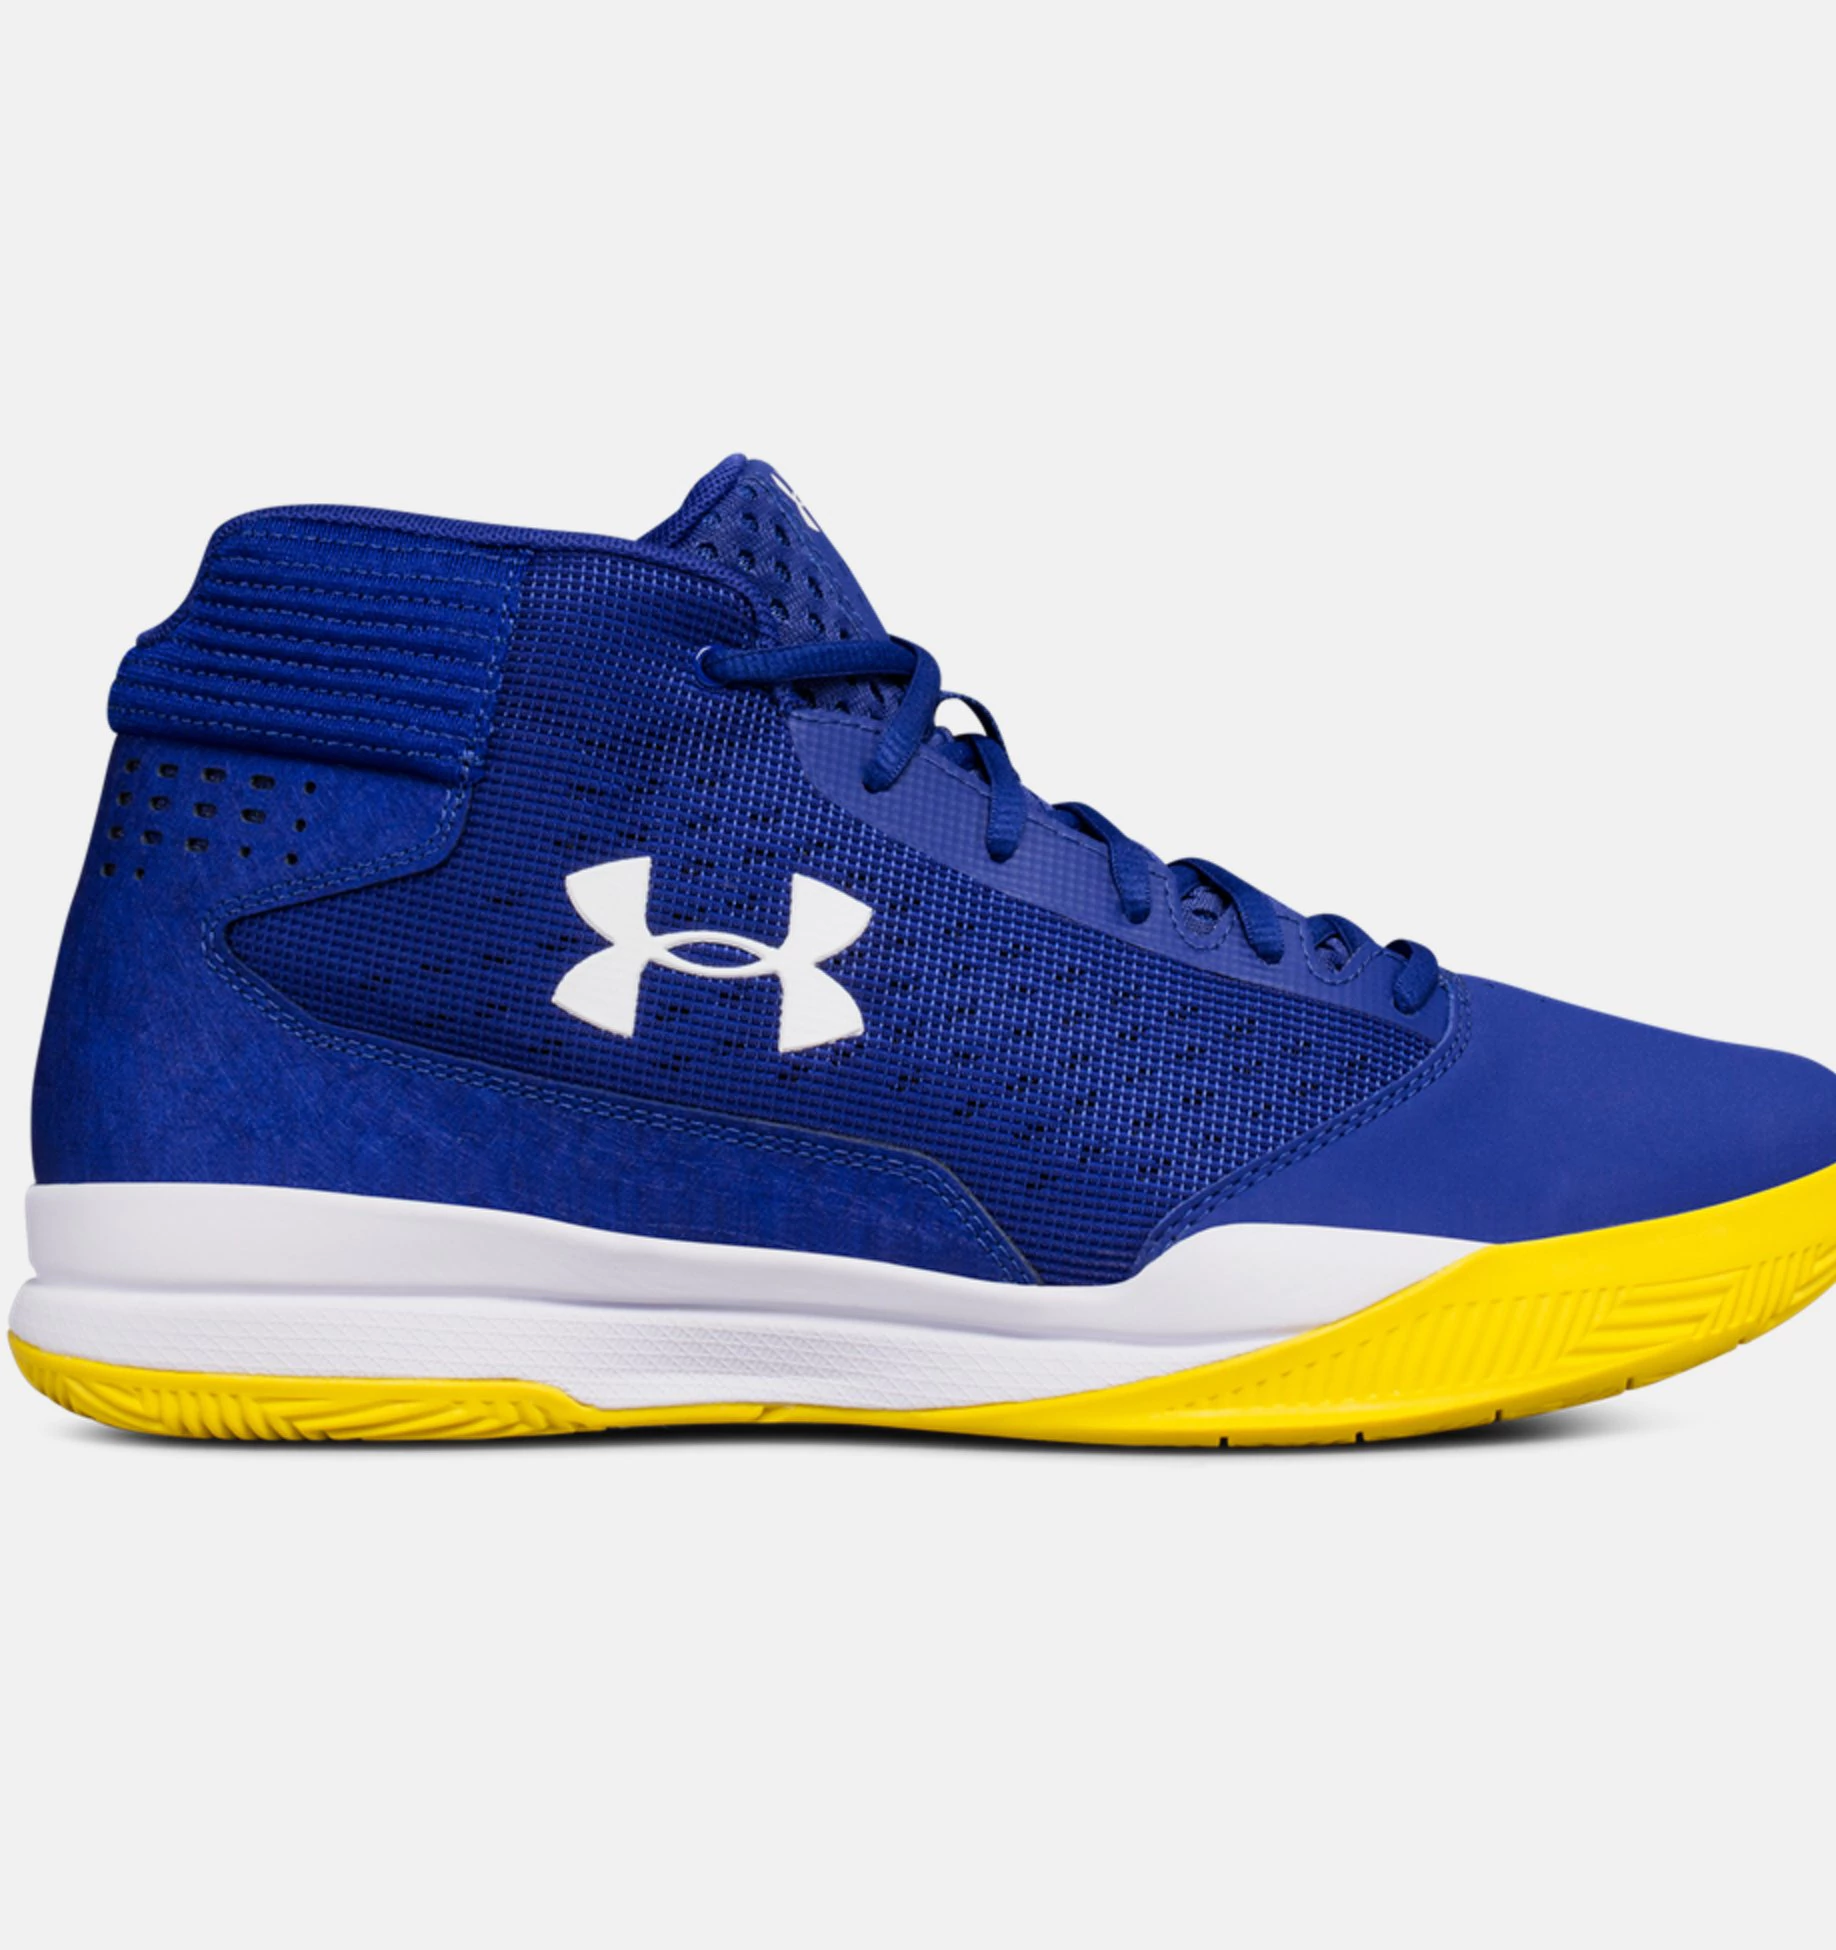 aab74f6ddeed Under Armour Jet Mid